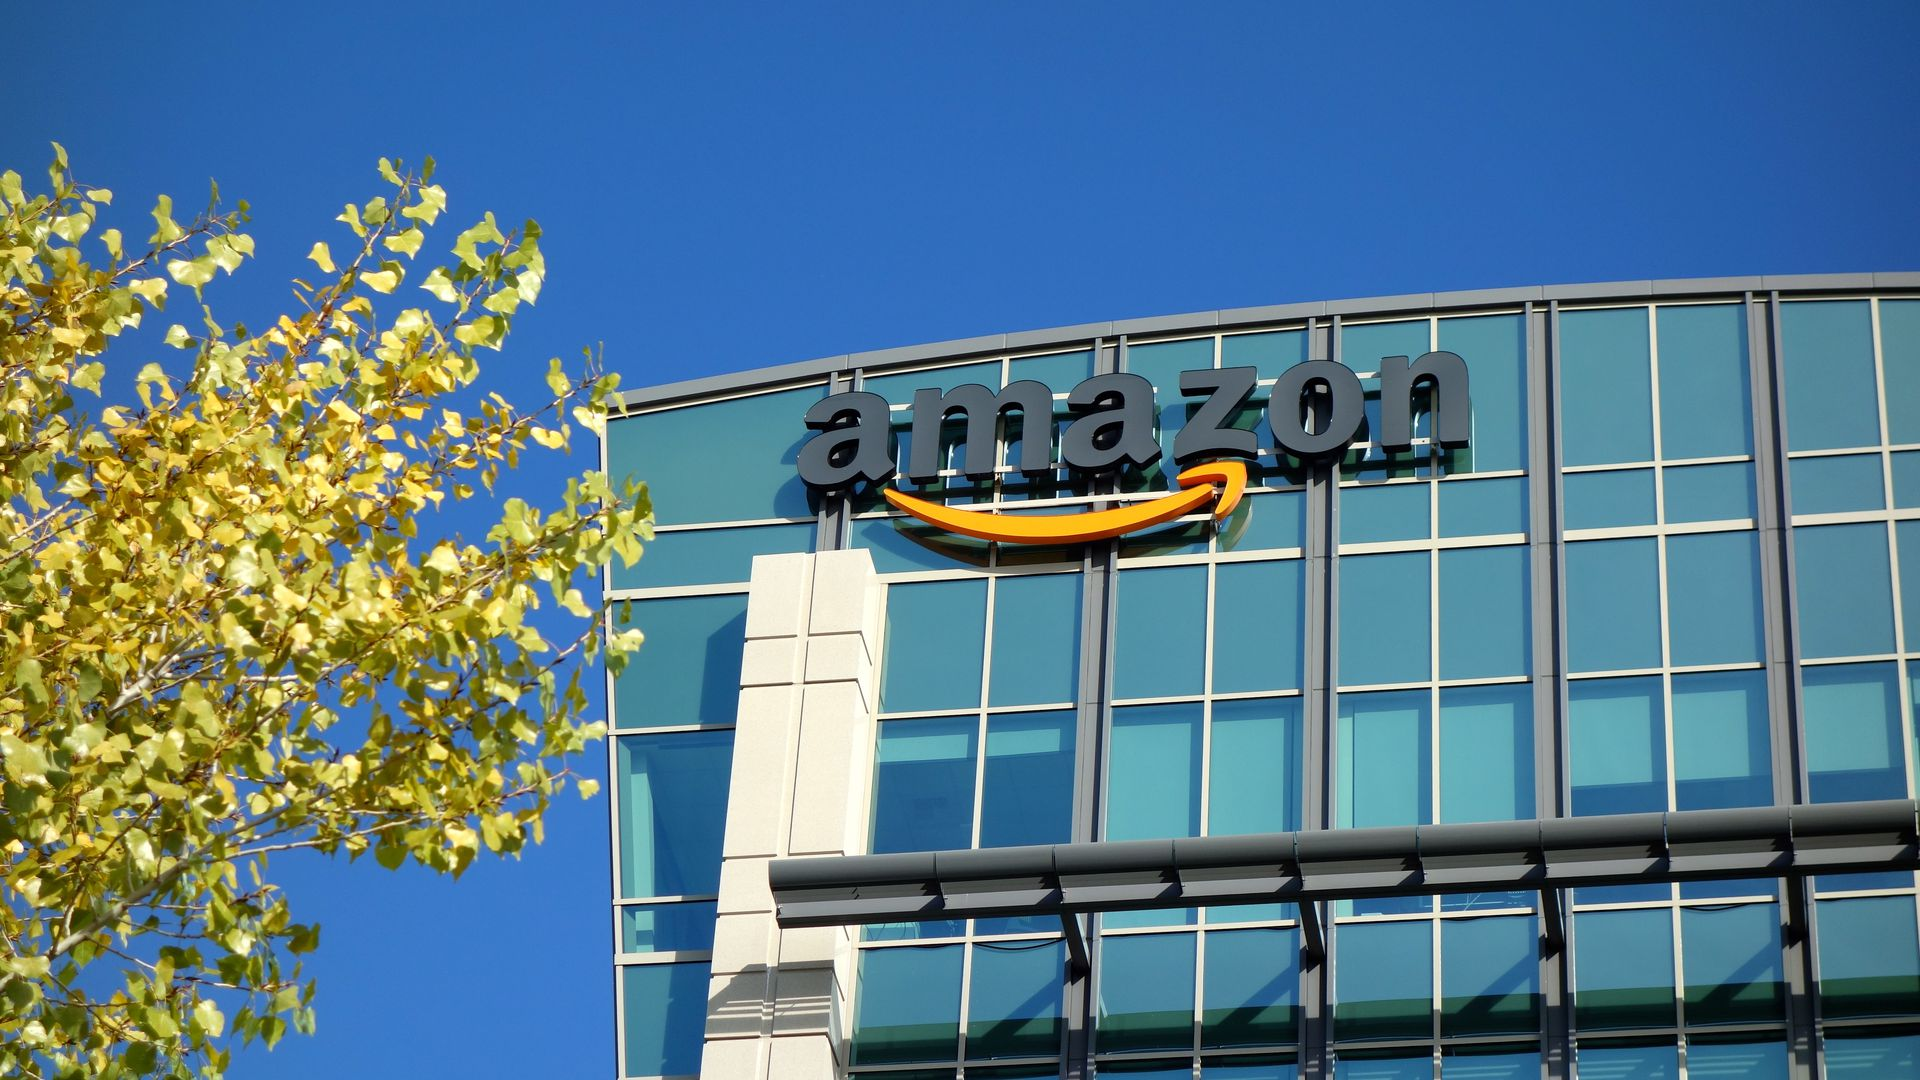 Amazon office building with logo on front.